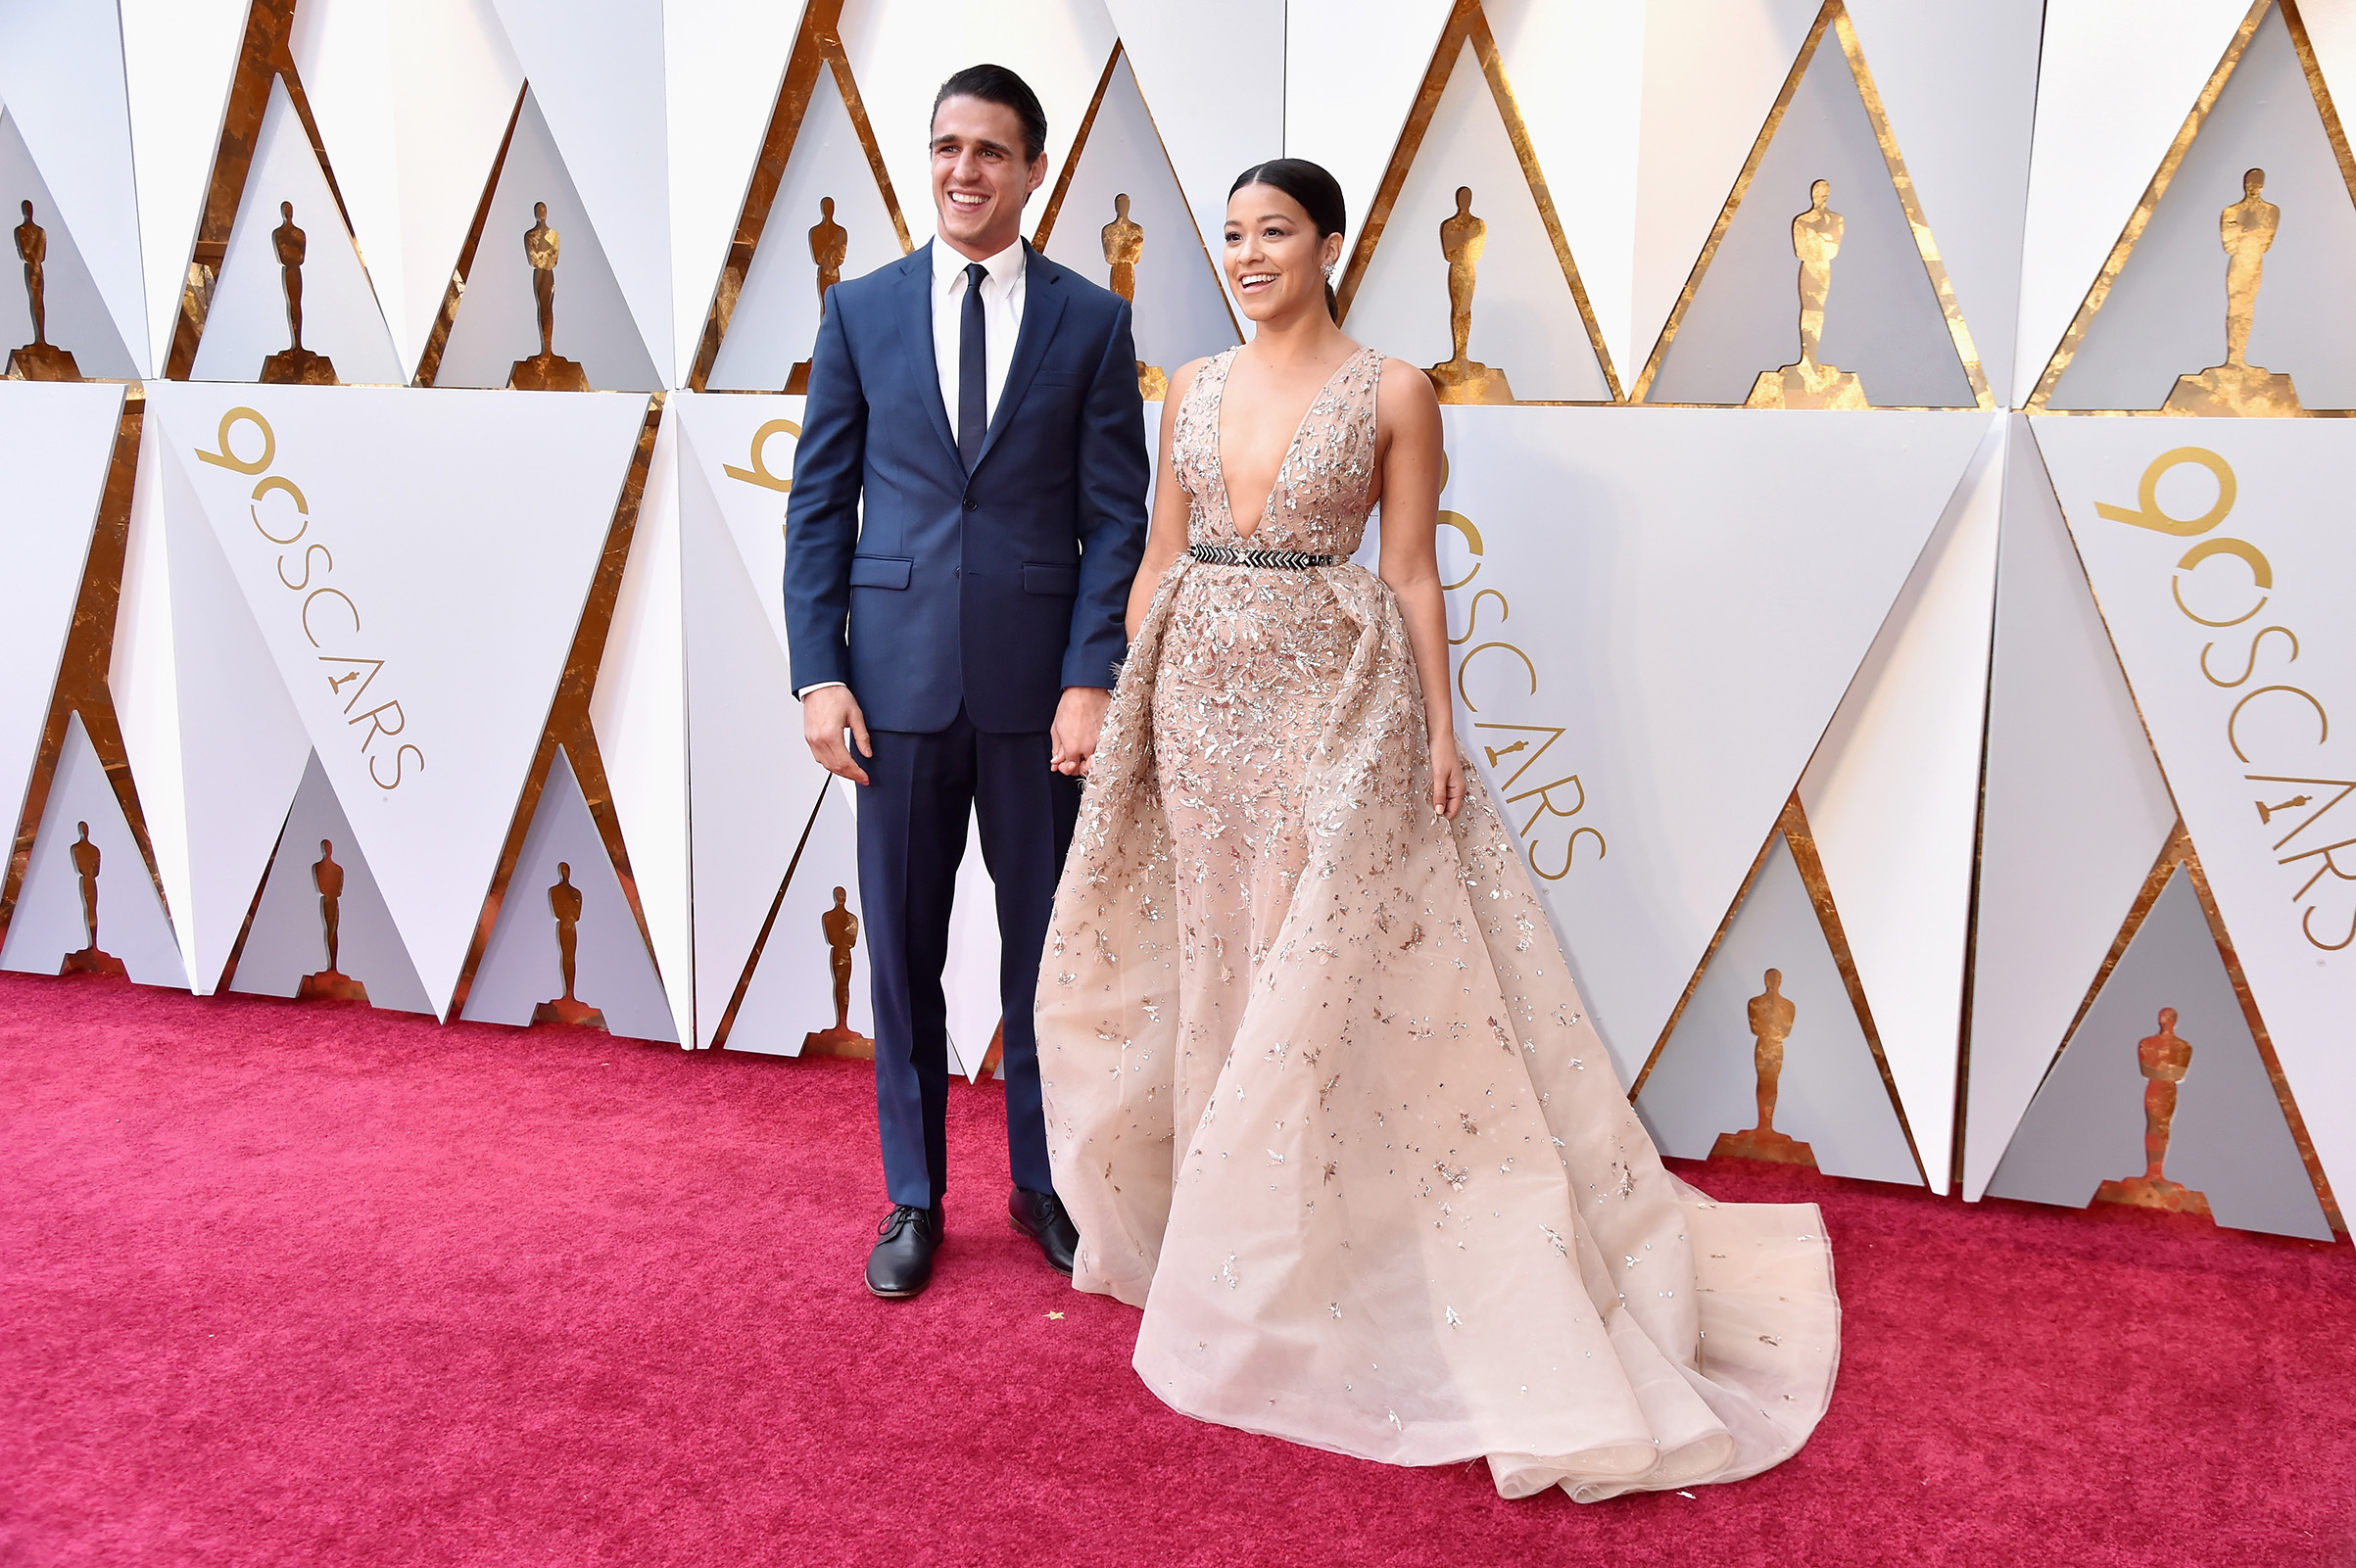 Joe LoCicero and Gina Rodriguez attend the 90th Annual Academy Awards at Hollywood & Highland Center on March 4.